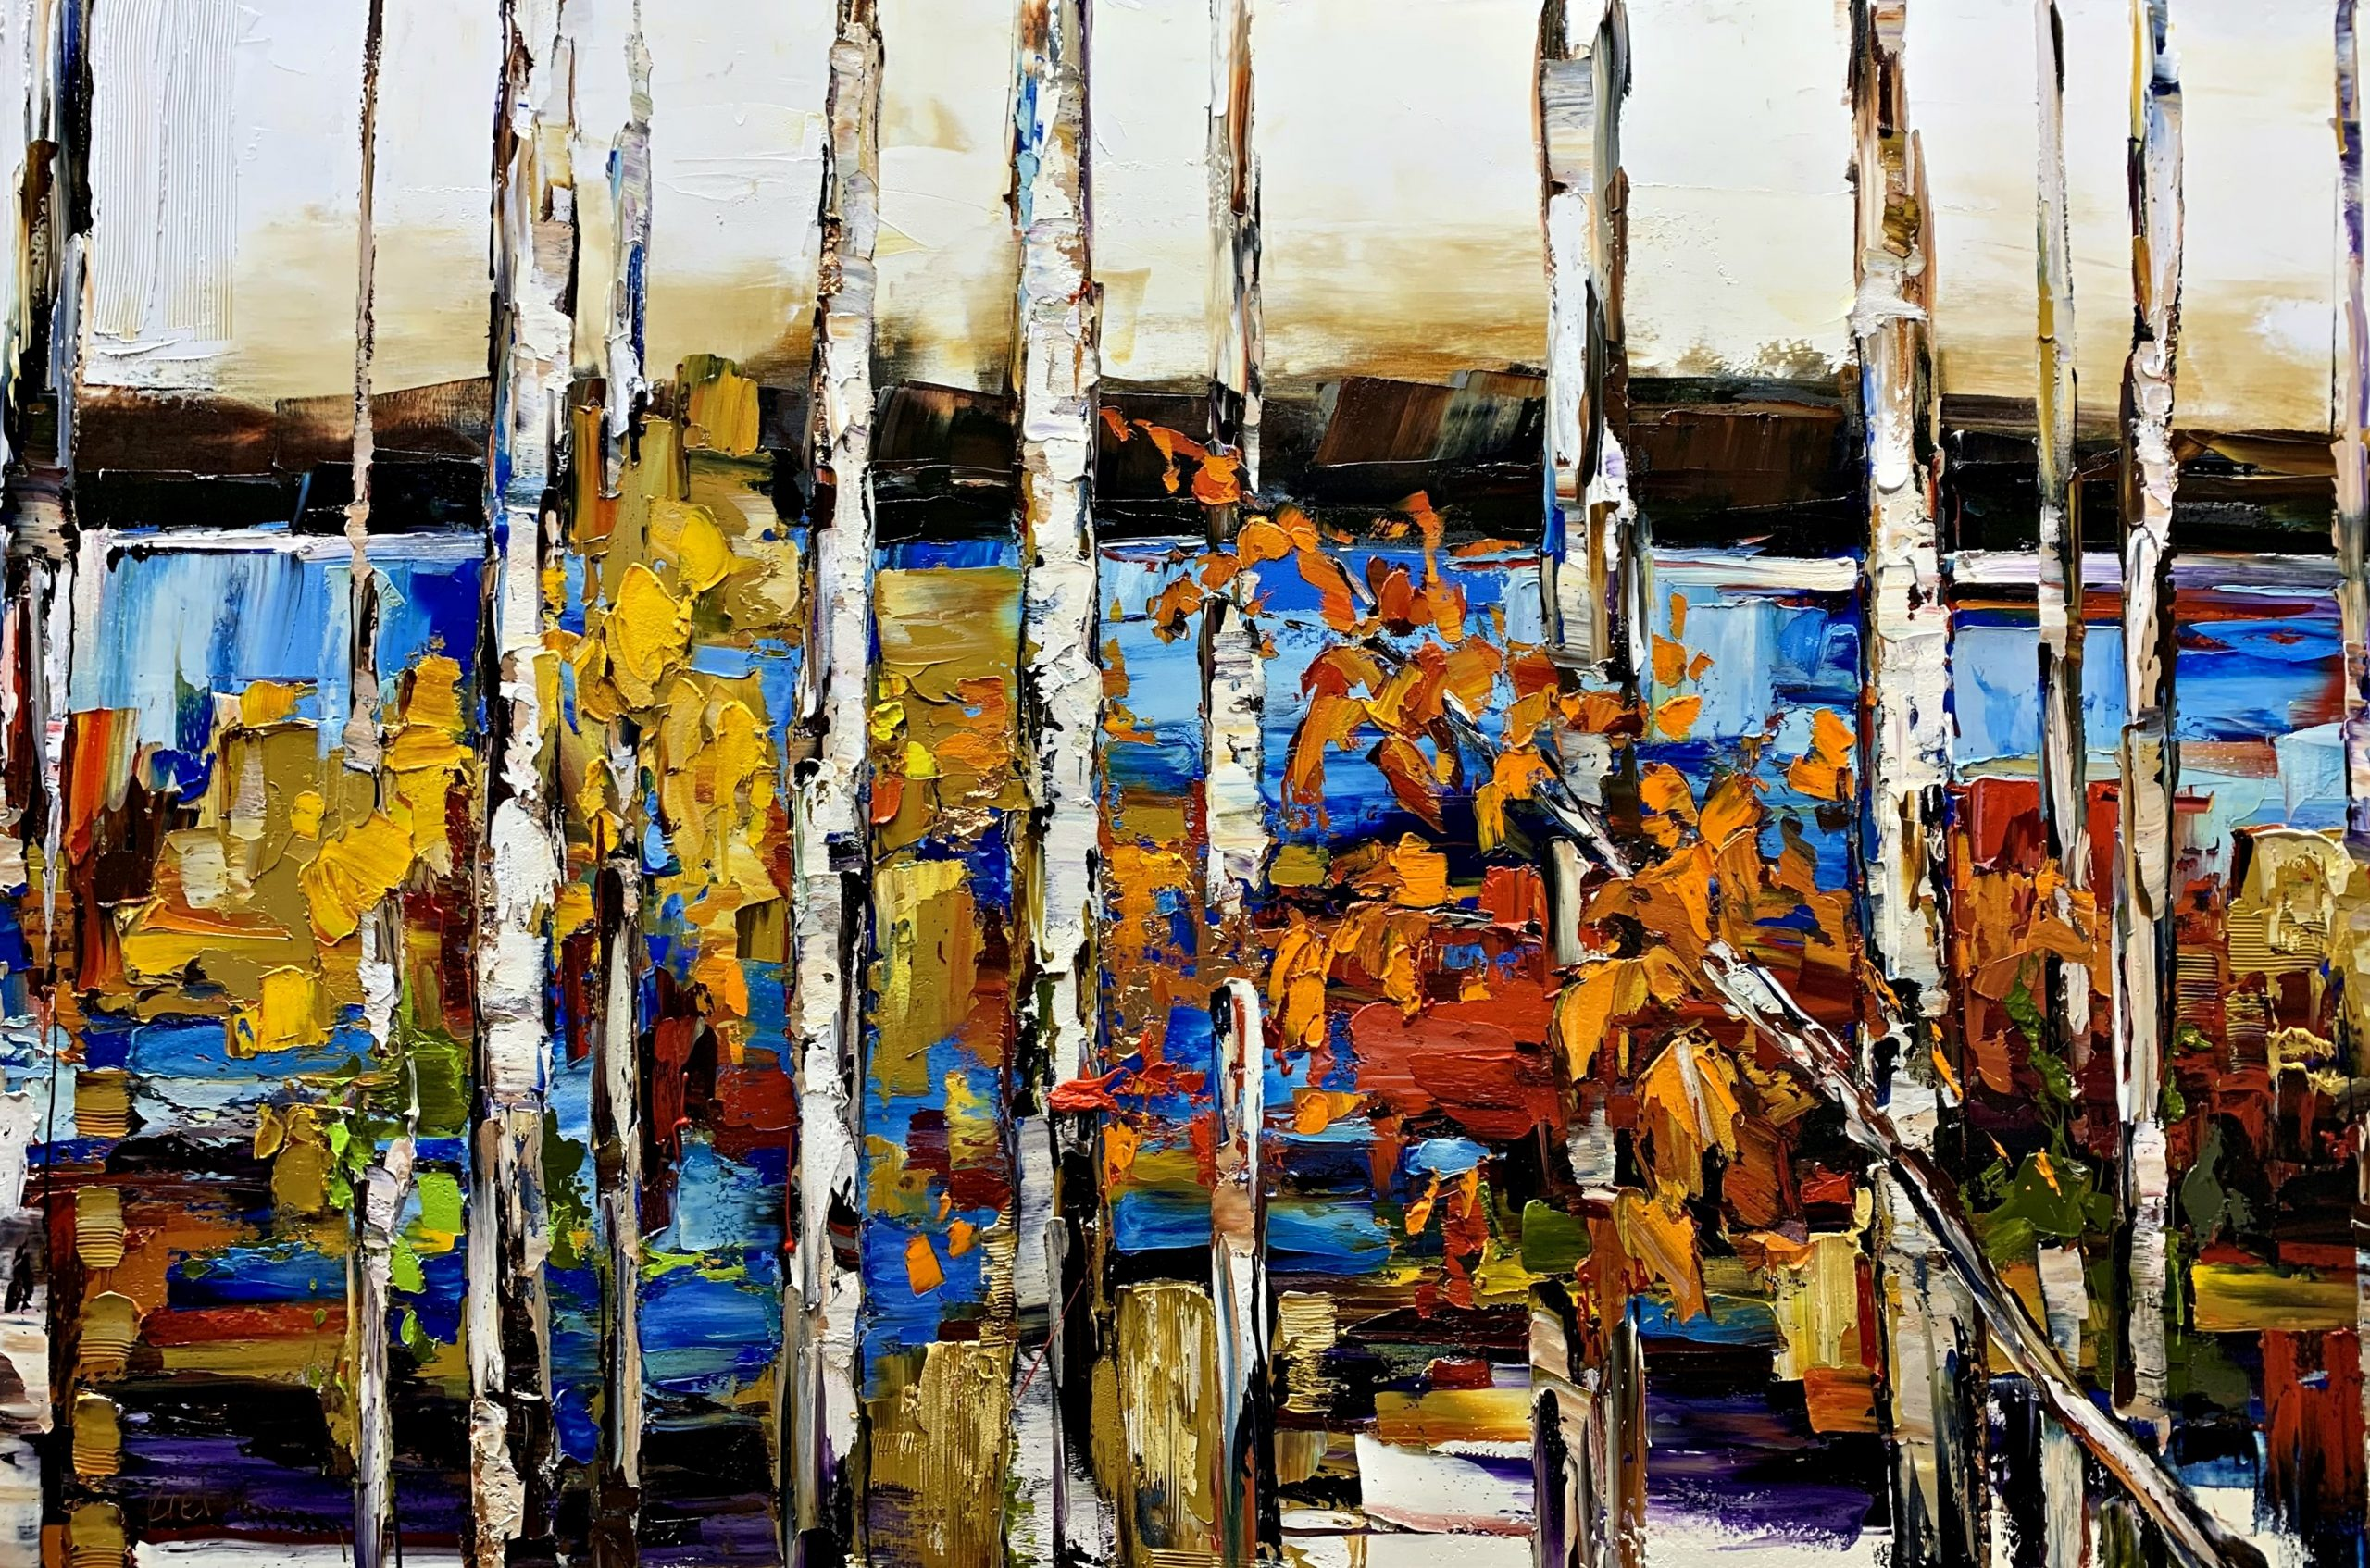 All These Miles from Home, mixed media landscape painting by Kimberly Kiel | Effusion Art Gallery + Cast Glass Studio, Invermere BC